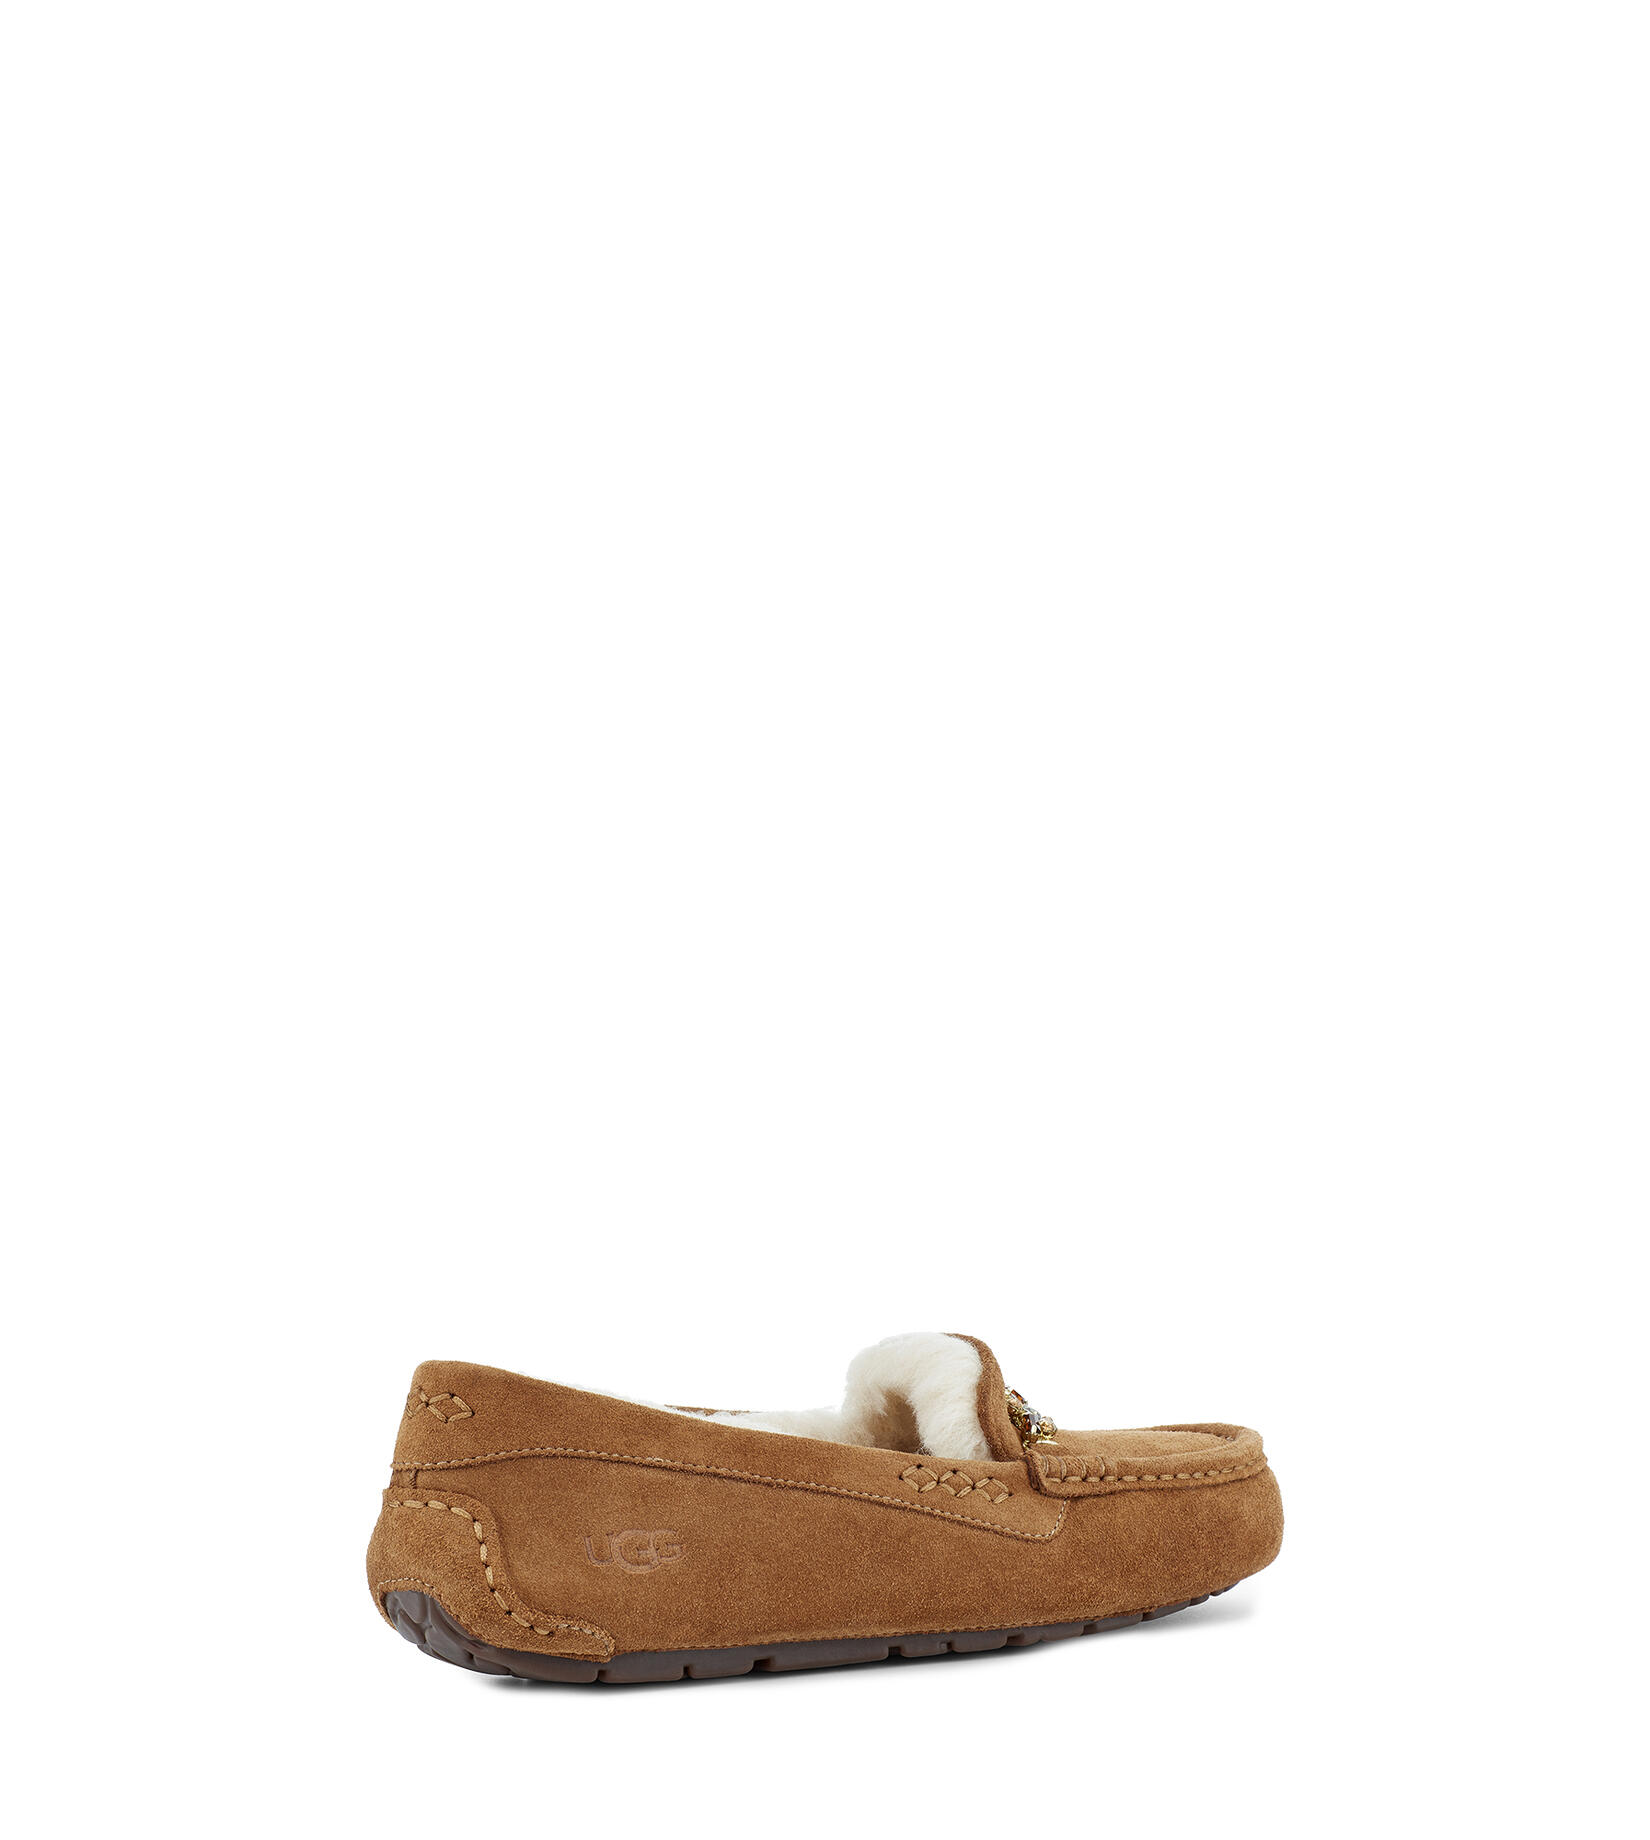 Ansley Charm Gem Slipper